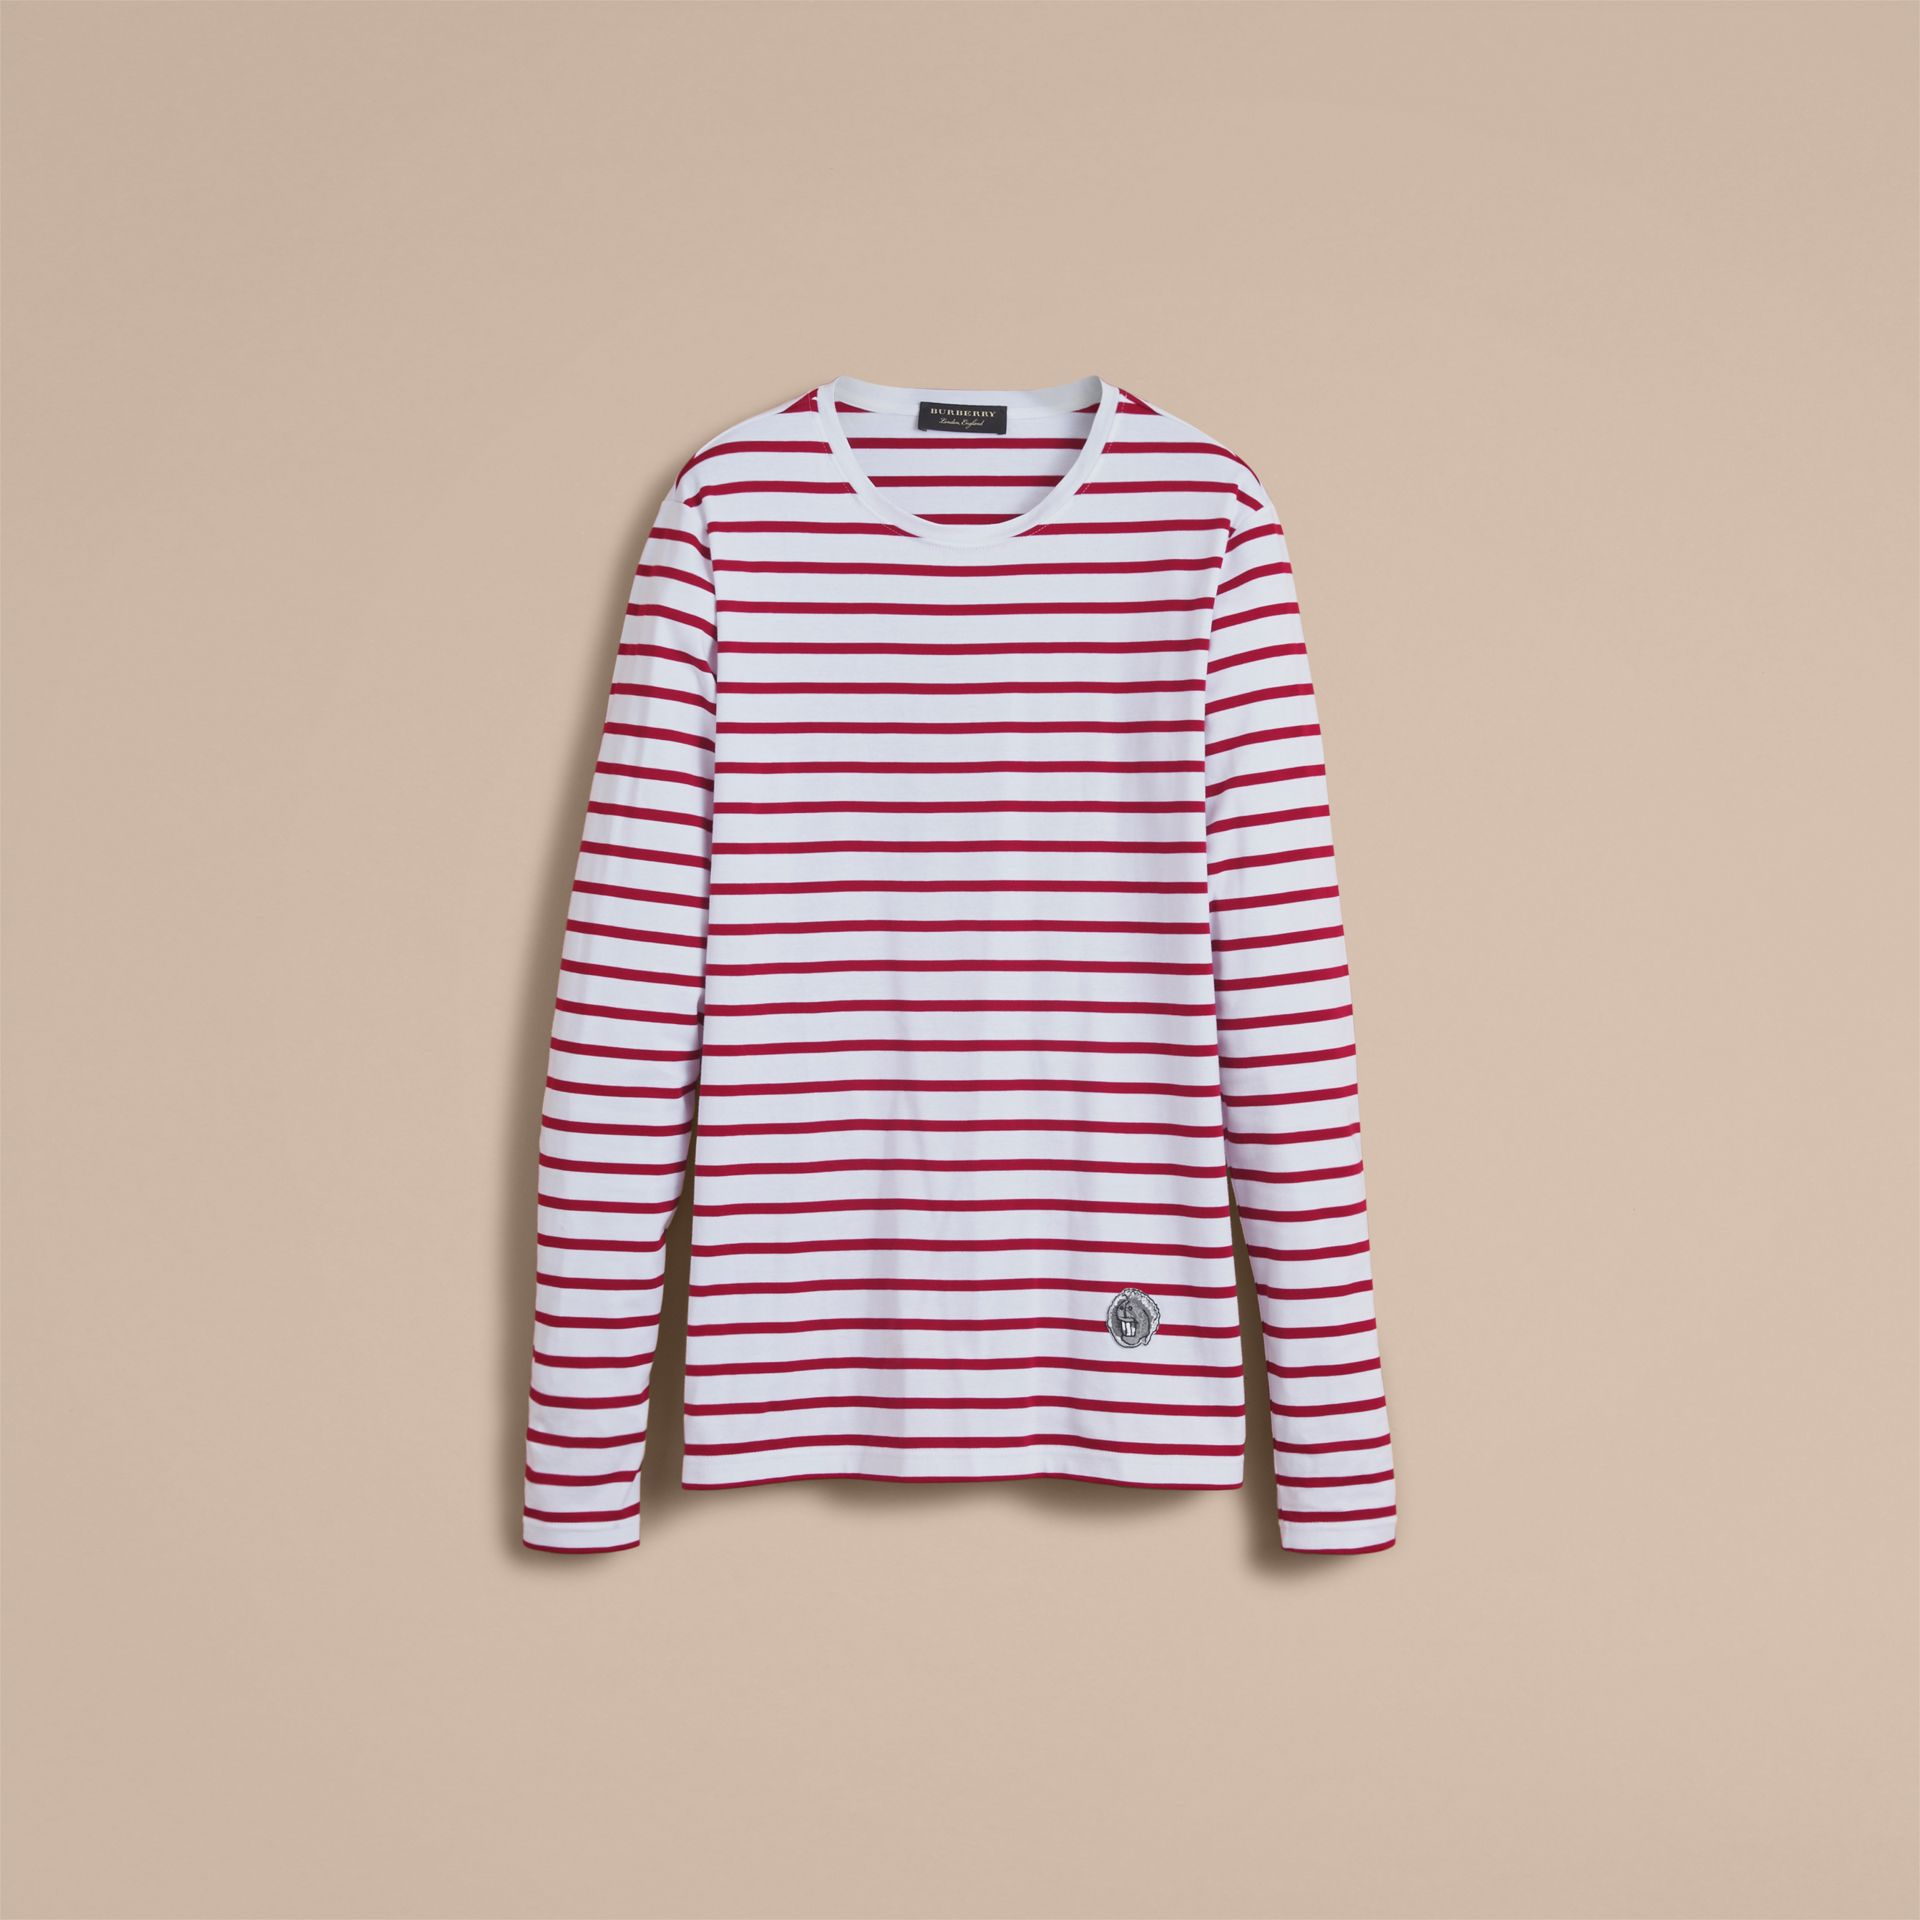 Unisex Pallas Heads Motif Breton Stripe Cotton Top in Parade Red - Men | Burberry - gallery image 4